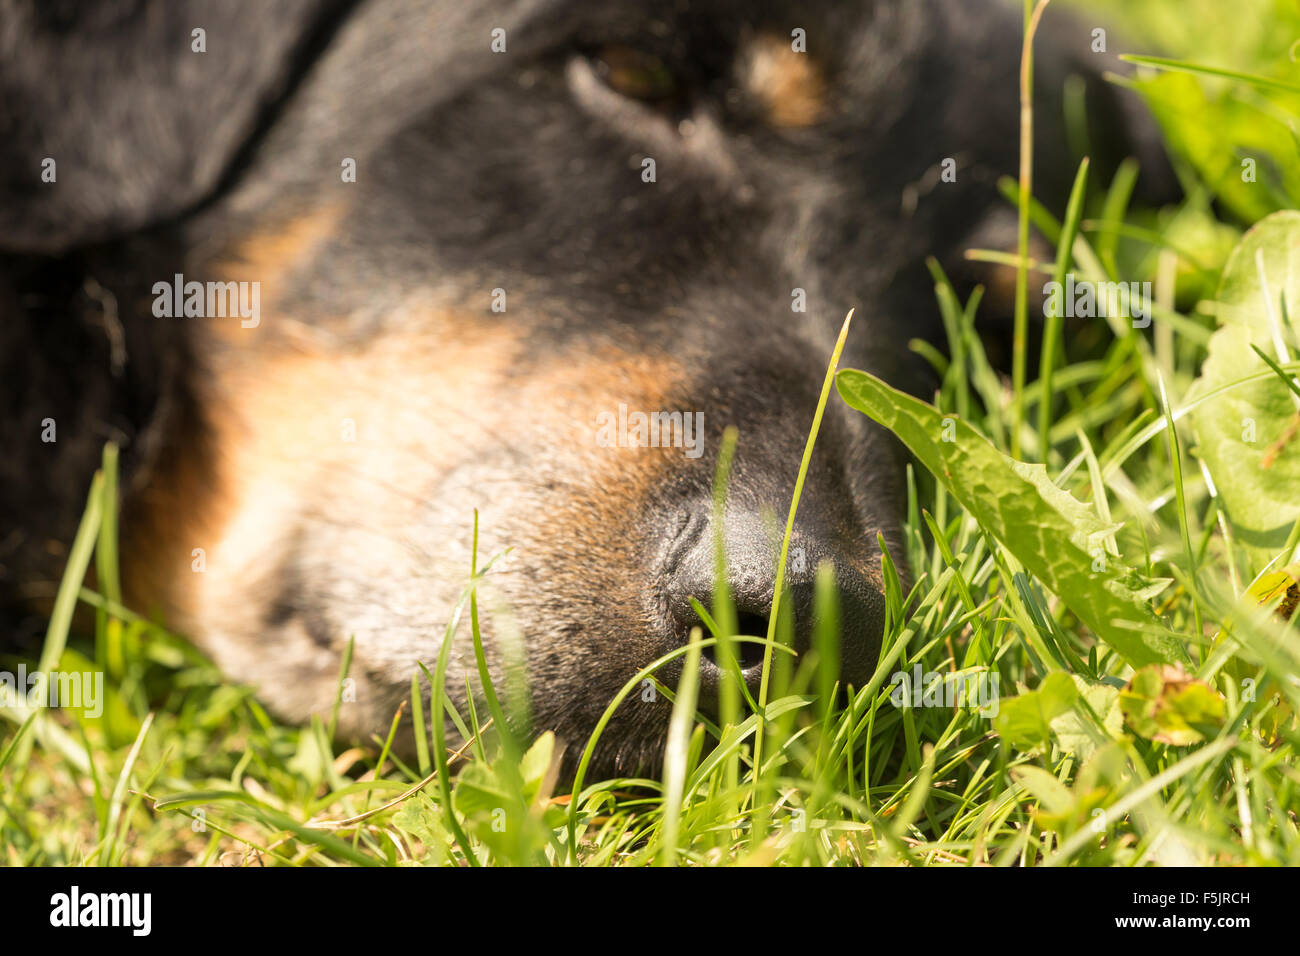 Tired dog snoozing on a lawn close up - Stock Image